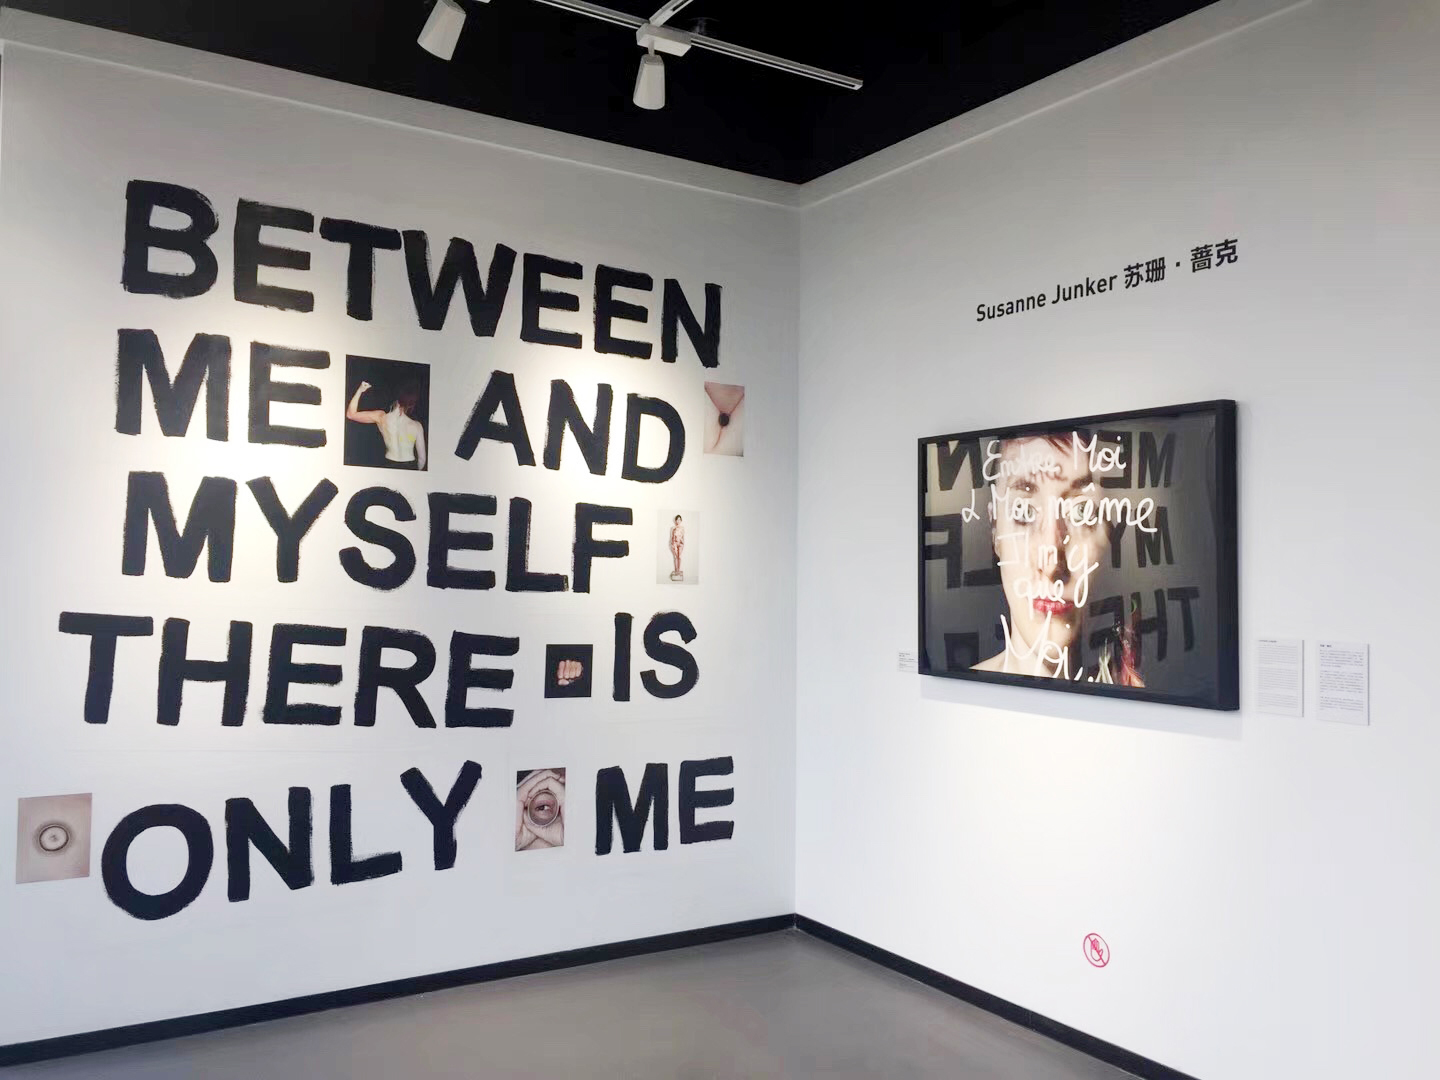 "Installation view:  left side: ""between me and myself there is only me"", acrylic color, images from the book: 21st century woman, printed on wall paper. 300 x 300 cm, side specific installation.   right side: from the series ©portrait-parole 2016, ""Entre moi et moi même, il n'y a que moi"" (between me and myself there is only me). 120 x 80 cm inkjet print on FineArt Baryta Hahnemühle paper, mounted on aluminium, framed 124 x 84 cm."